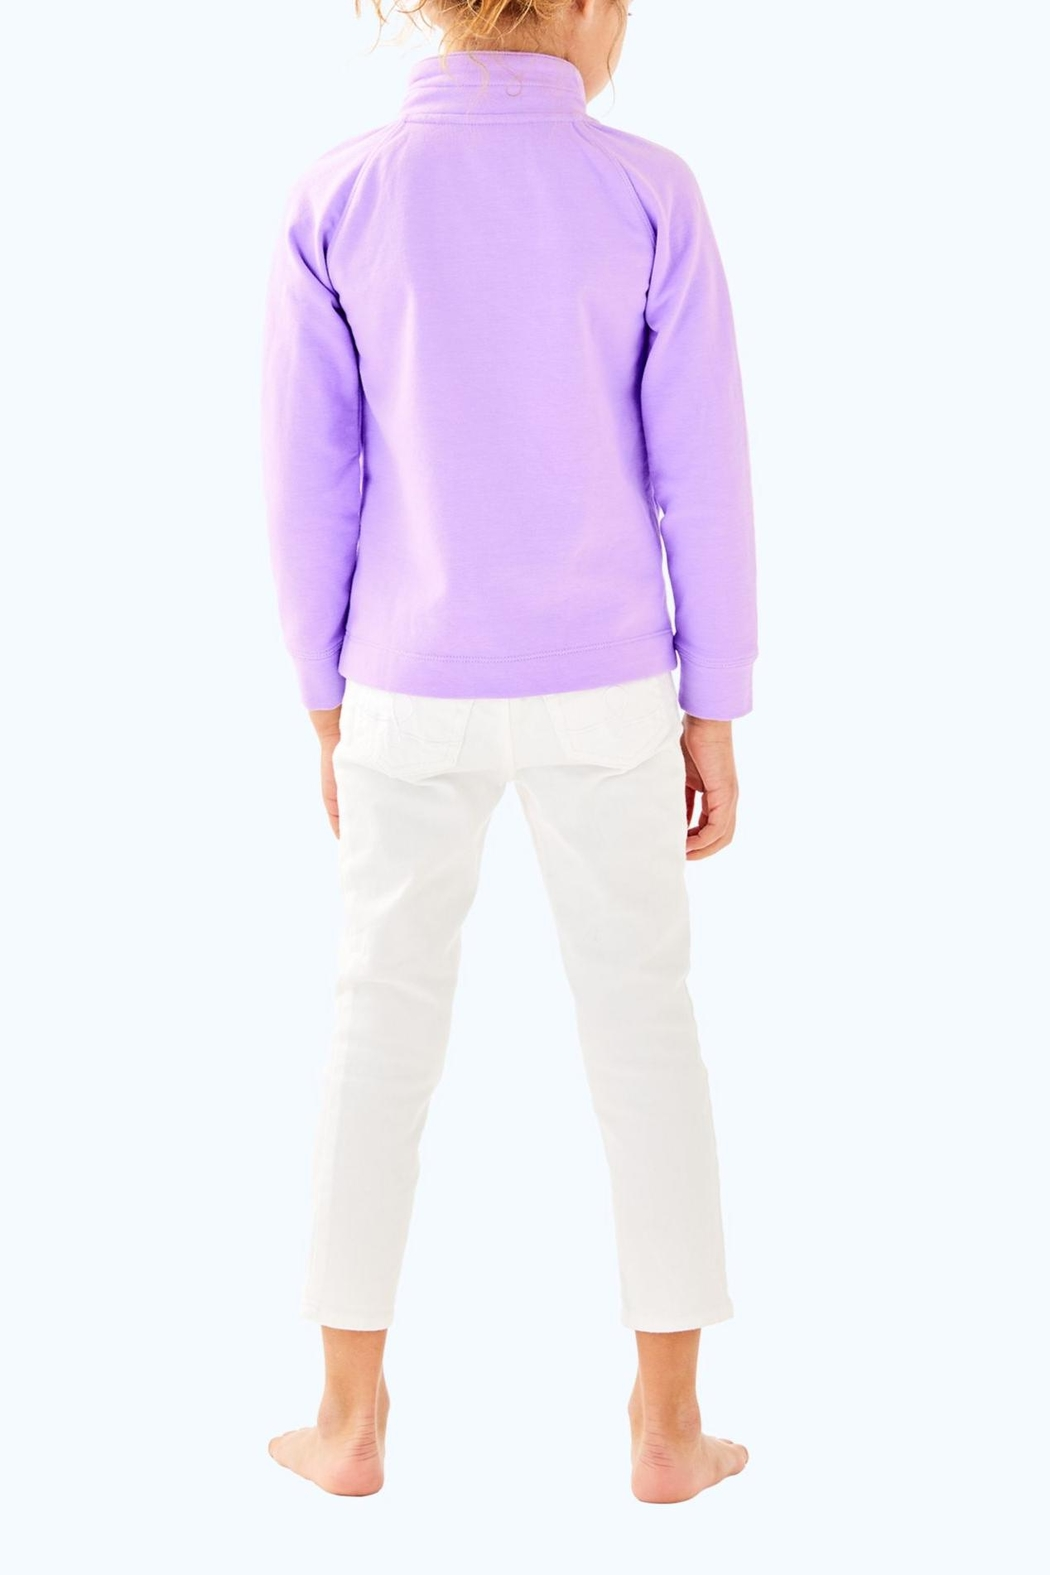 Lilly Pulitzer Leona Zip Up - Front Full Image